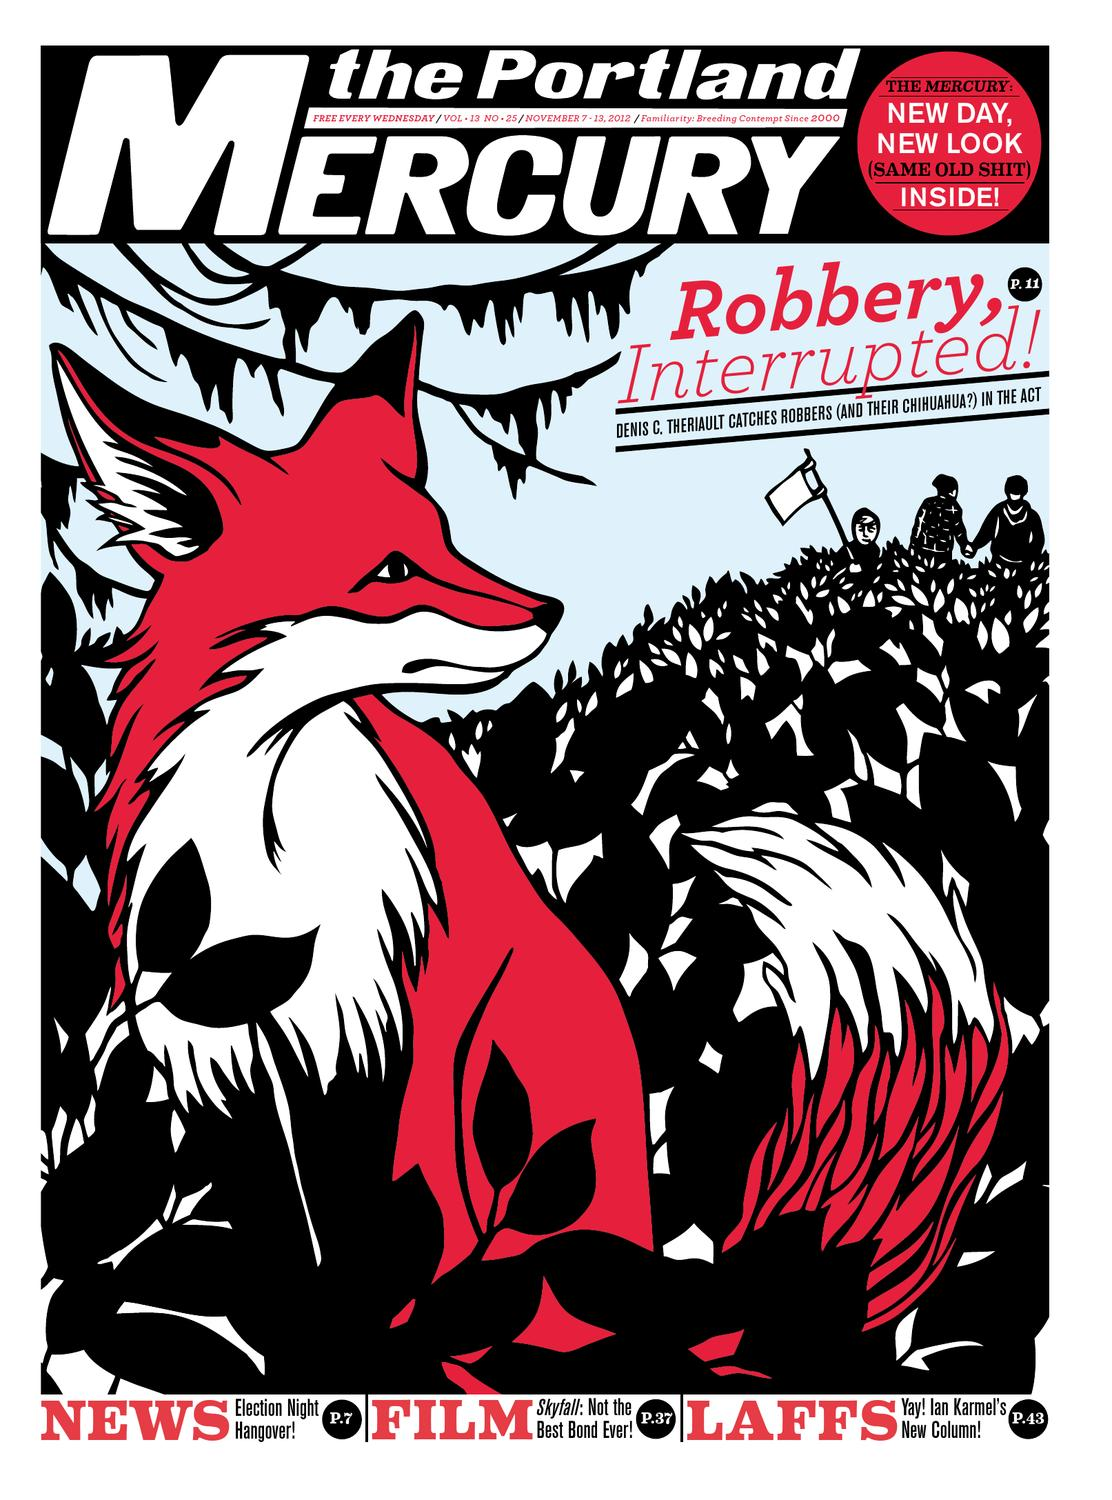 The Portland Mercury November 7 2012 Vol 13 No 25 by